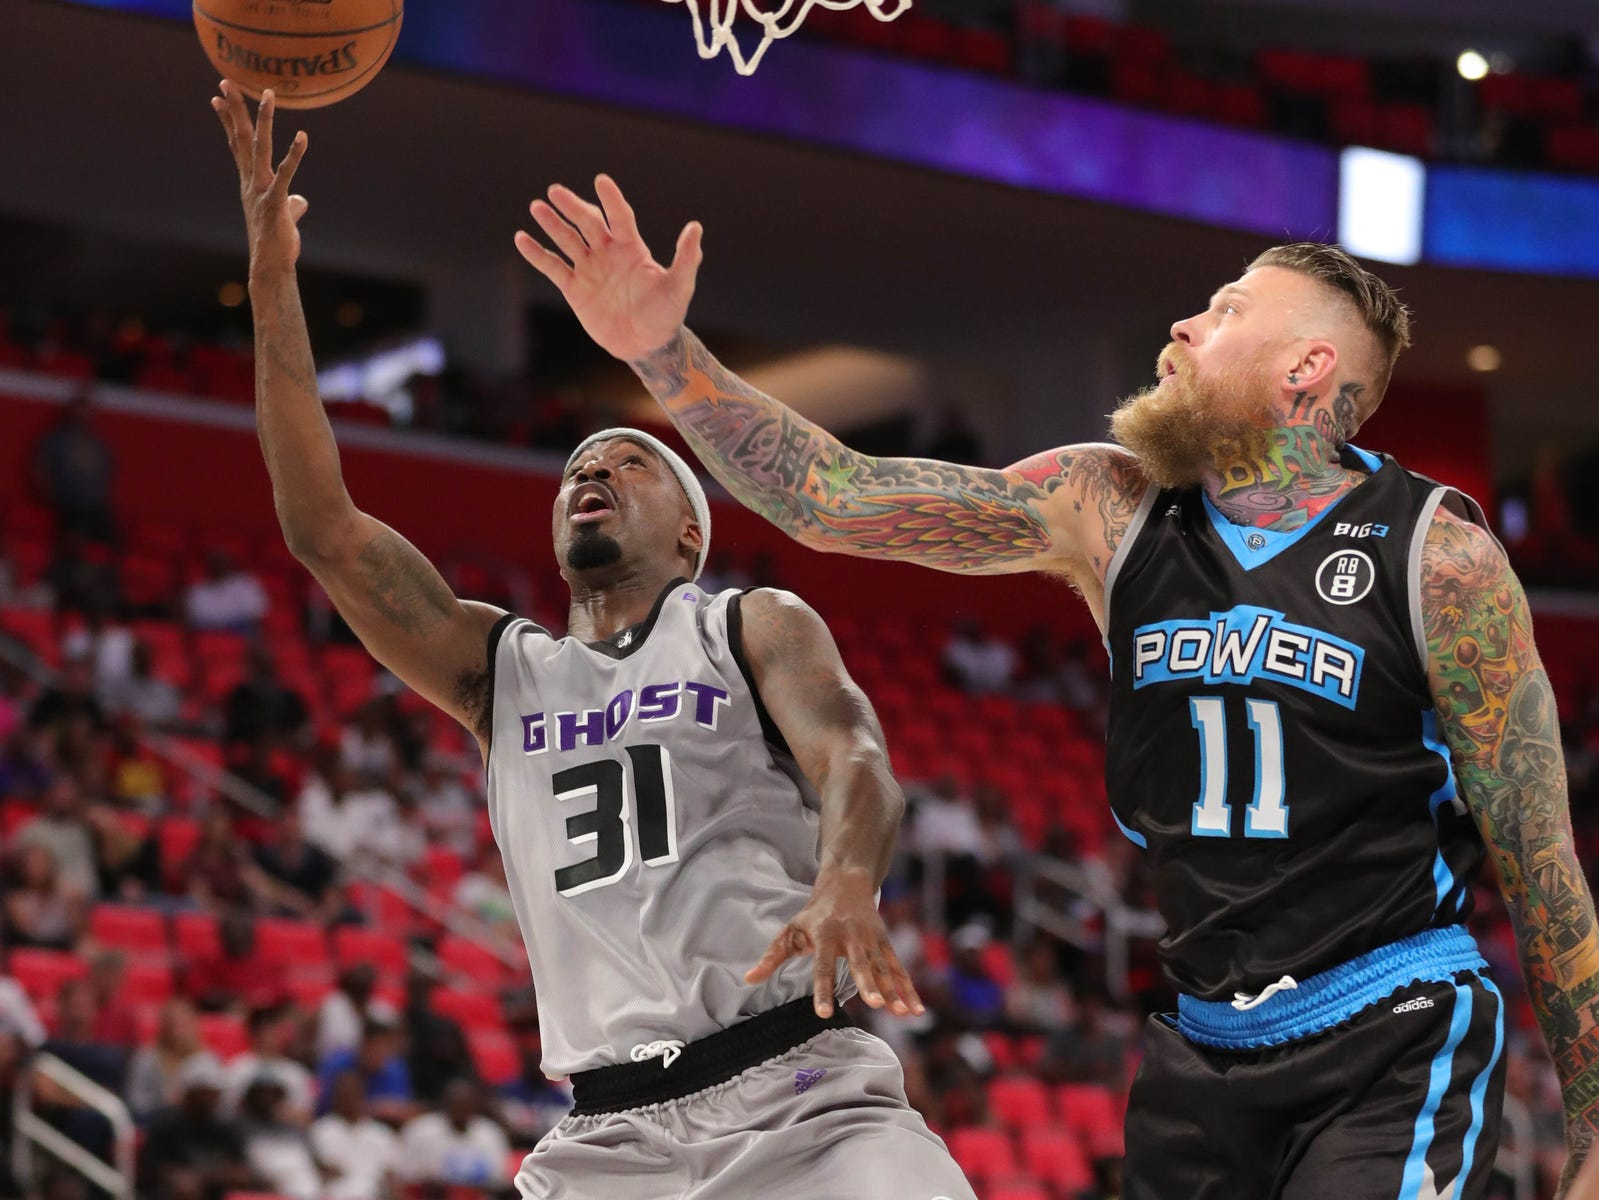 Ghost's Ricky Davis drives against Power's Chris Andersen during BIG3 action on Friday, July 13, 2018 at Little Caesars Arena in Detroit.